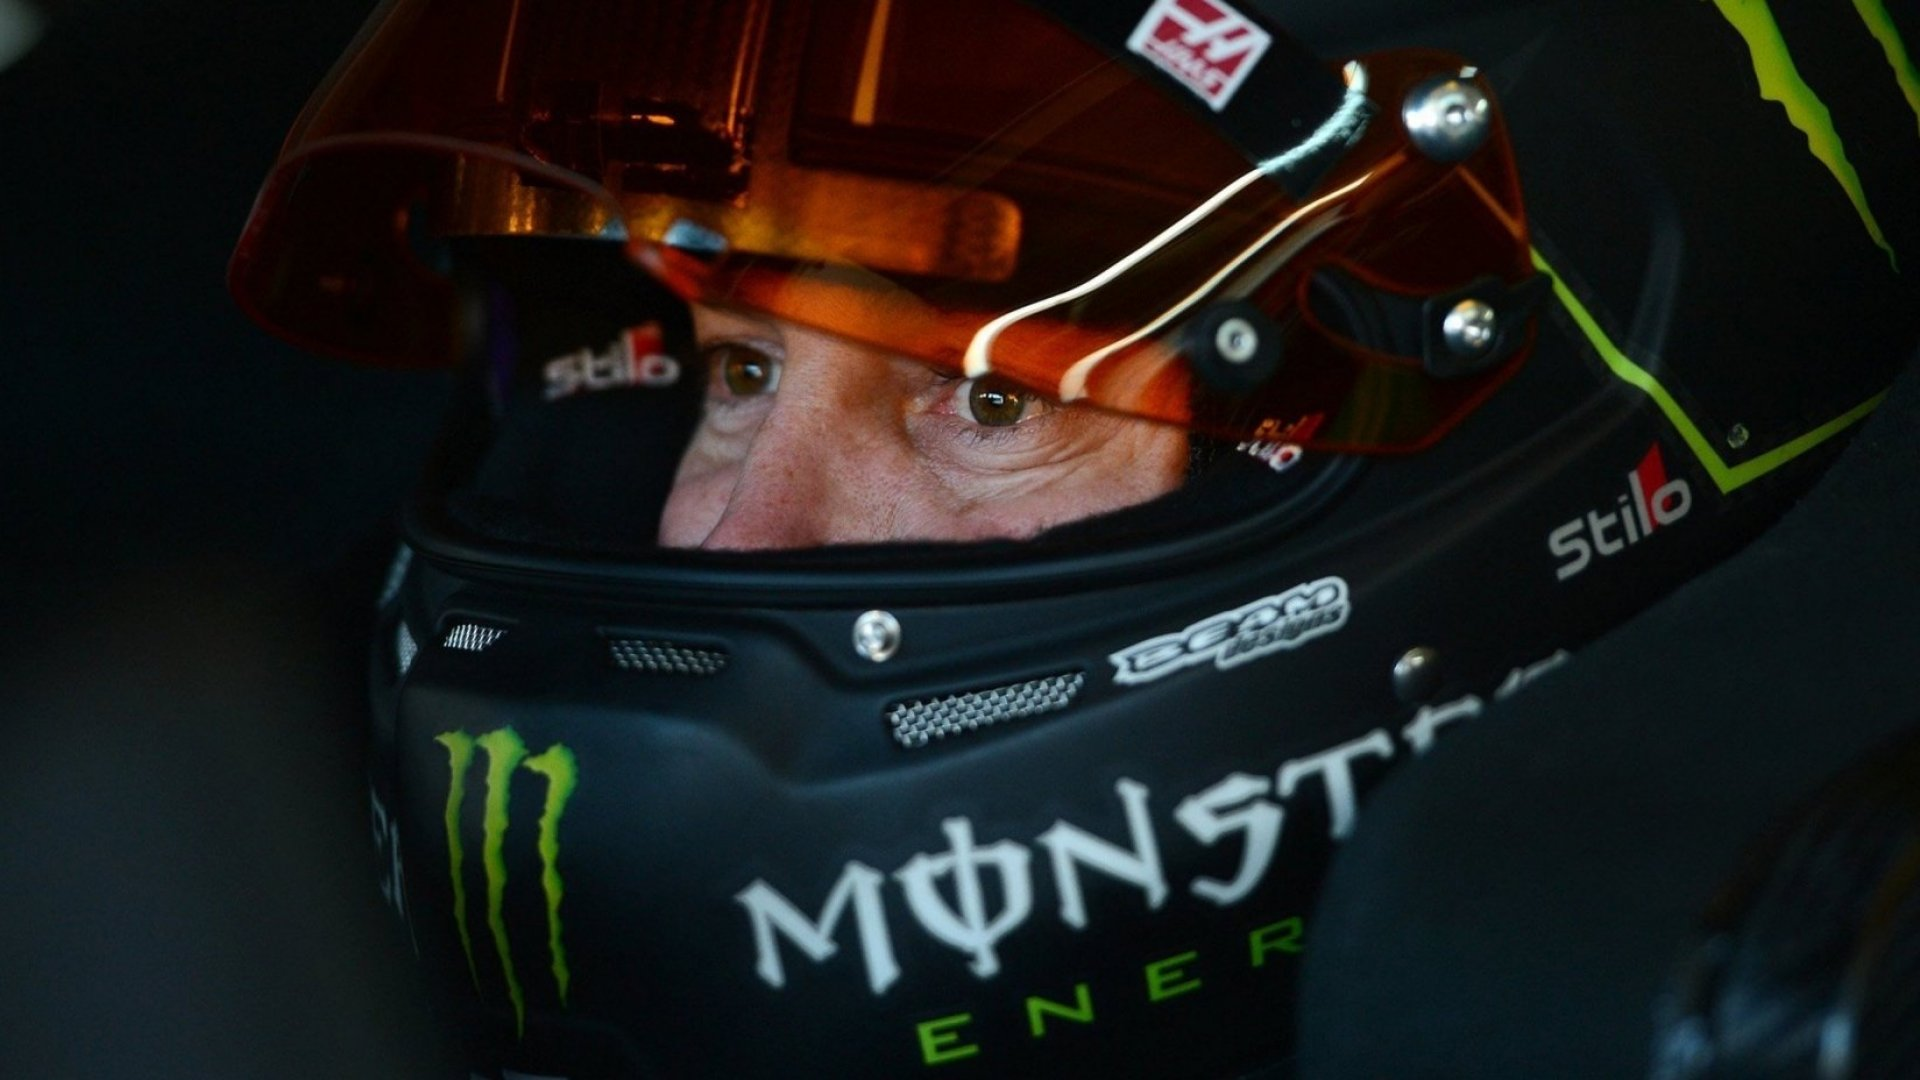 Healthy Work-Life Balance? This Nascar Champion Might Just Have the Whole Thing Figured Out